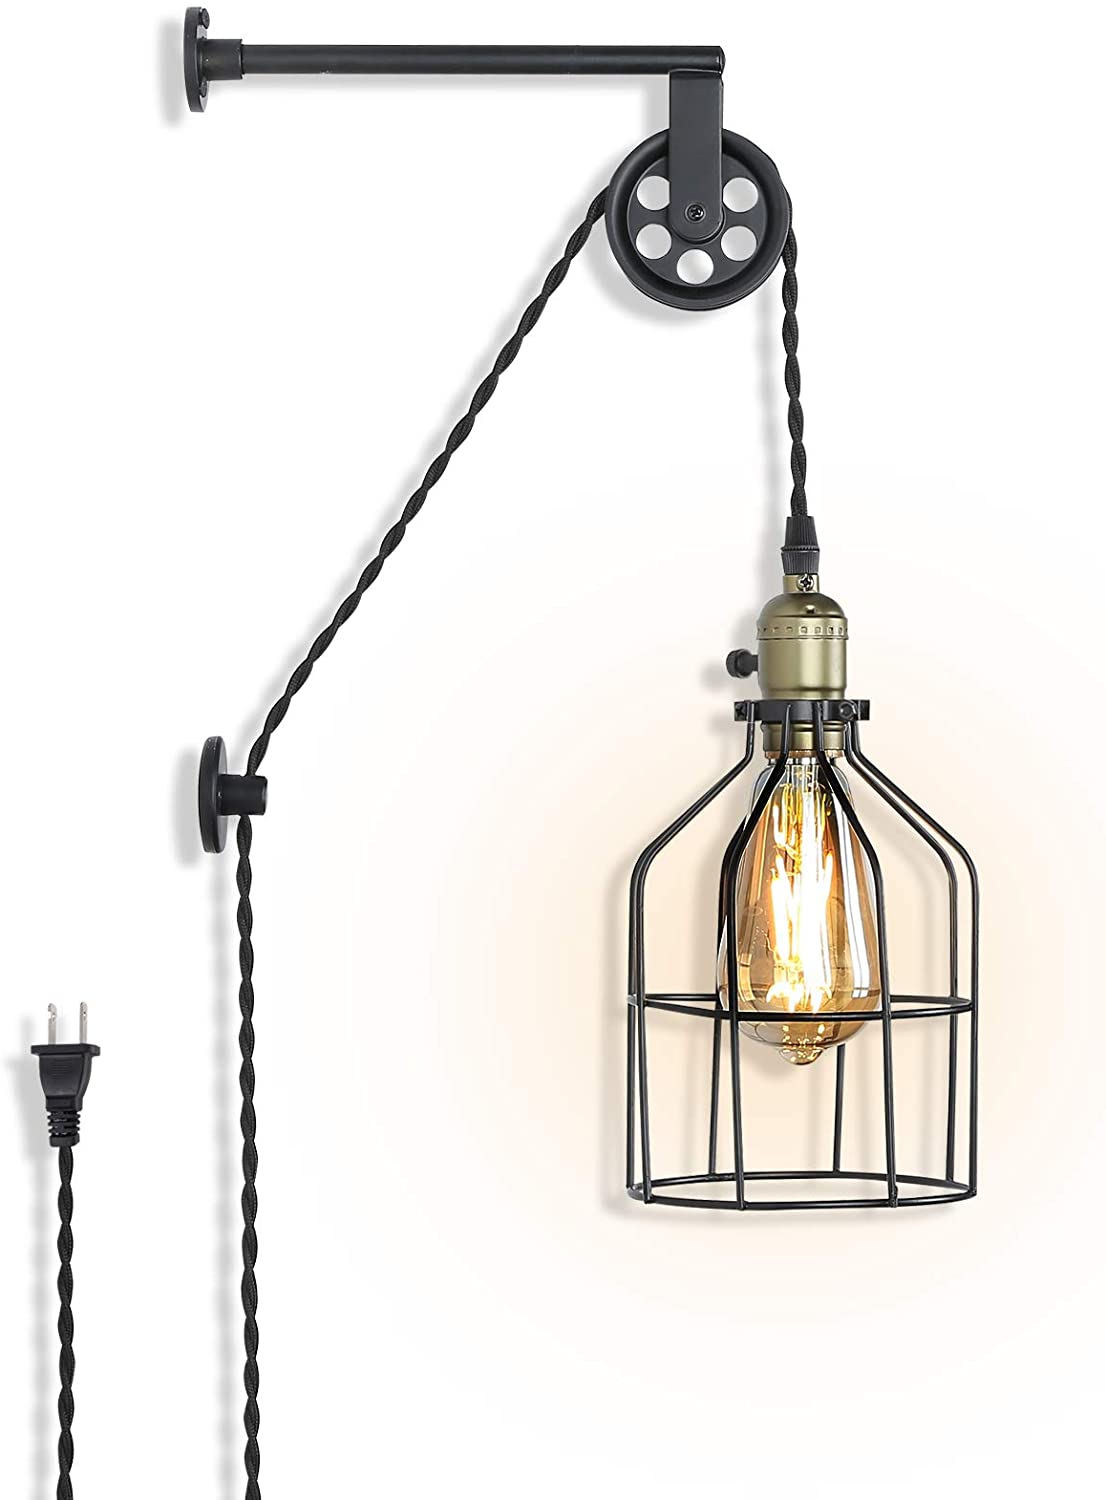 Industrial Wall Sconce Lights Lift Pulley Design Vintage Farmhouse Wall Lamps for Living Room Decor, Retro Mounted Fixture with Wheel Pendant Lamp for Bedroom(No Bulb)